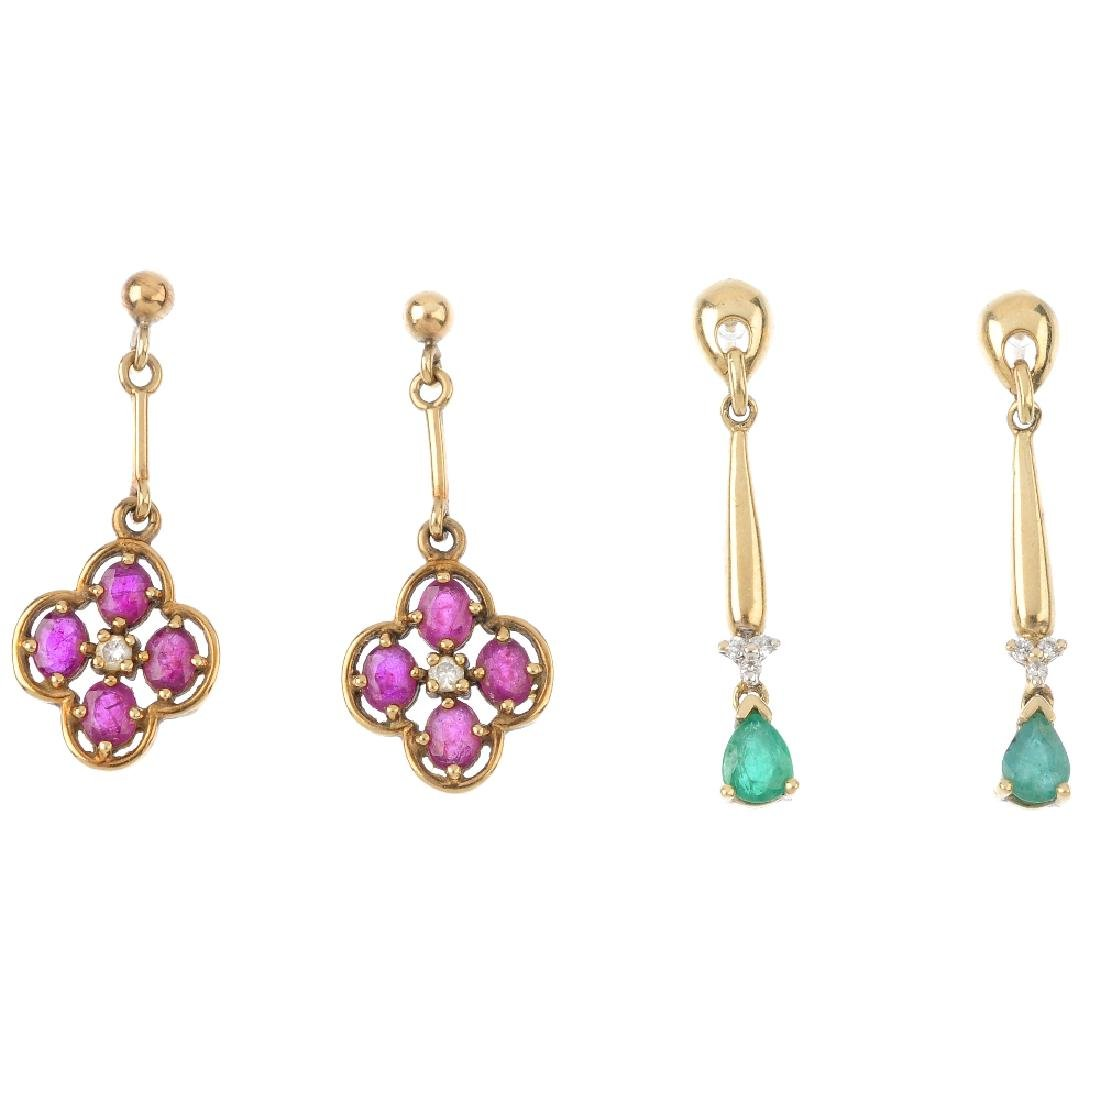 Four pairs of earrings. To include a pair of 9ct gold